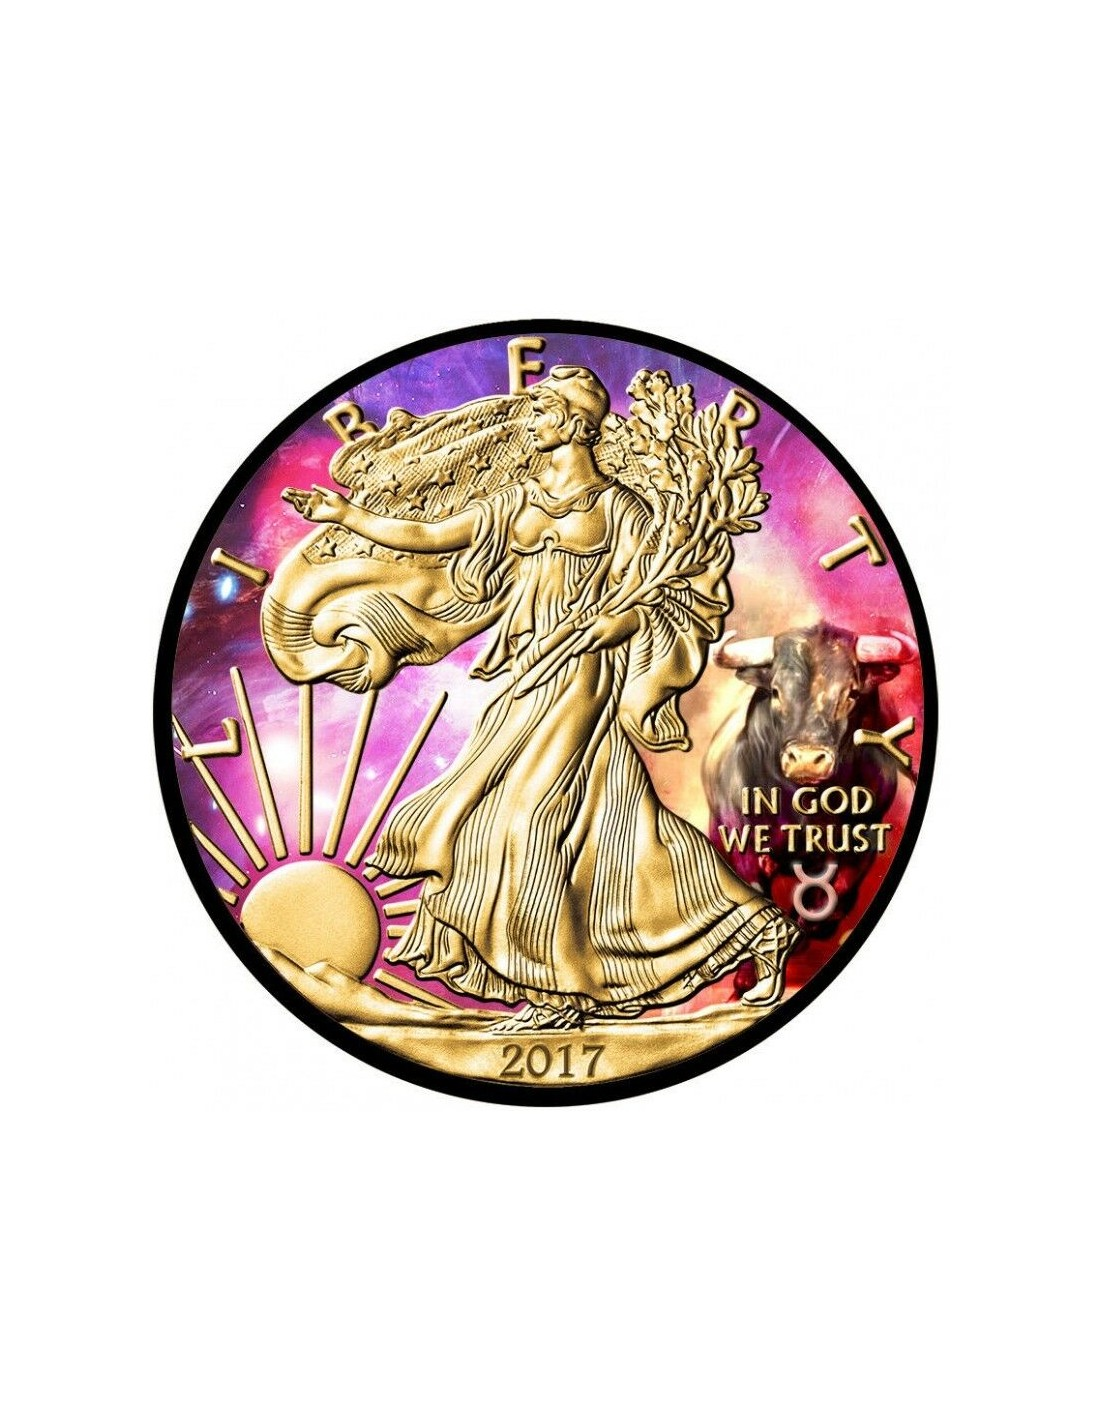 Gold and Ruthenium gilded American Silver Eagle Coin Zodiac Aries Colorized